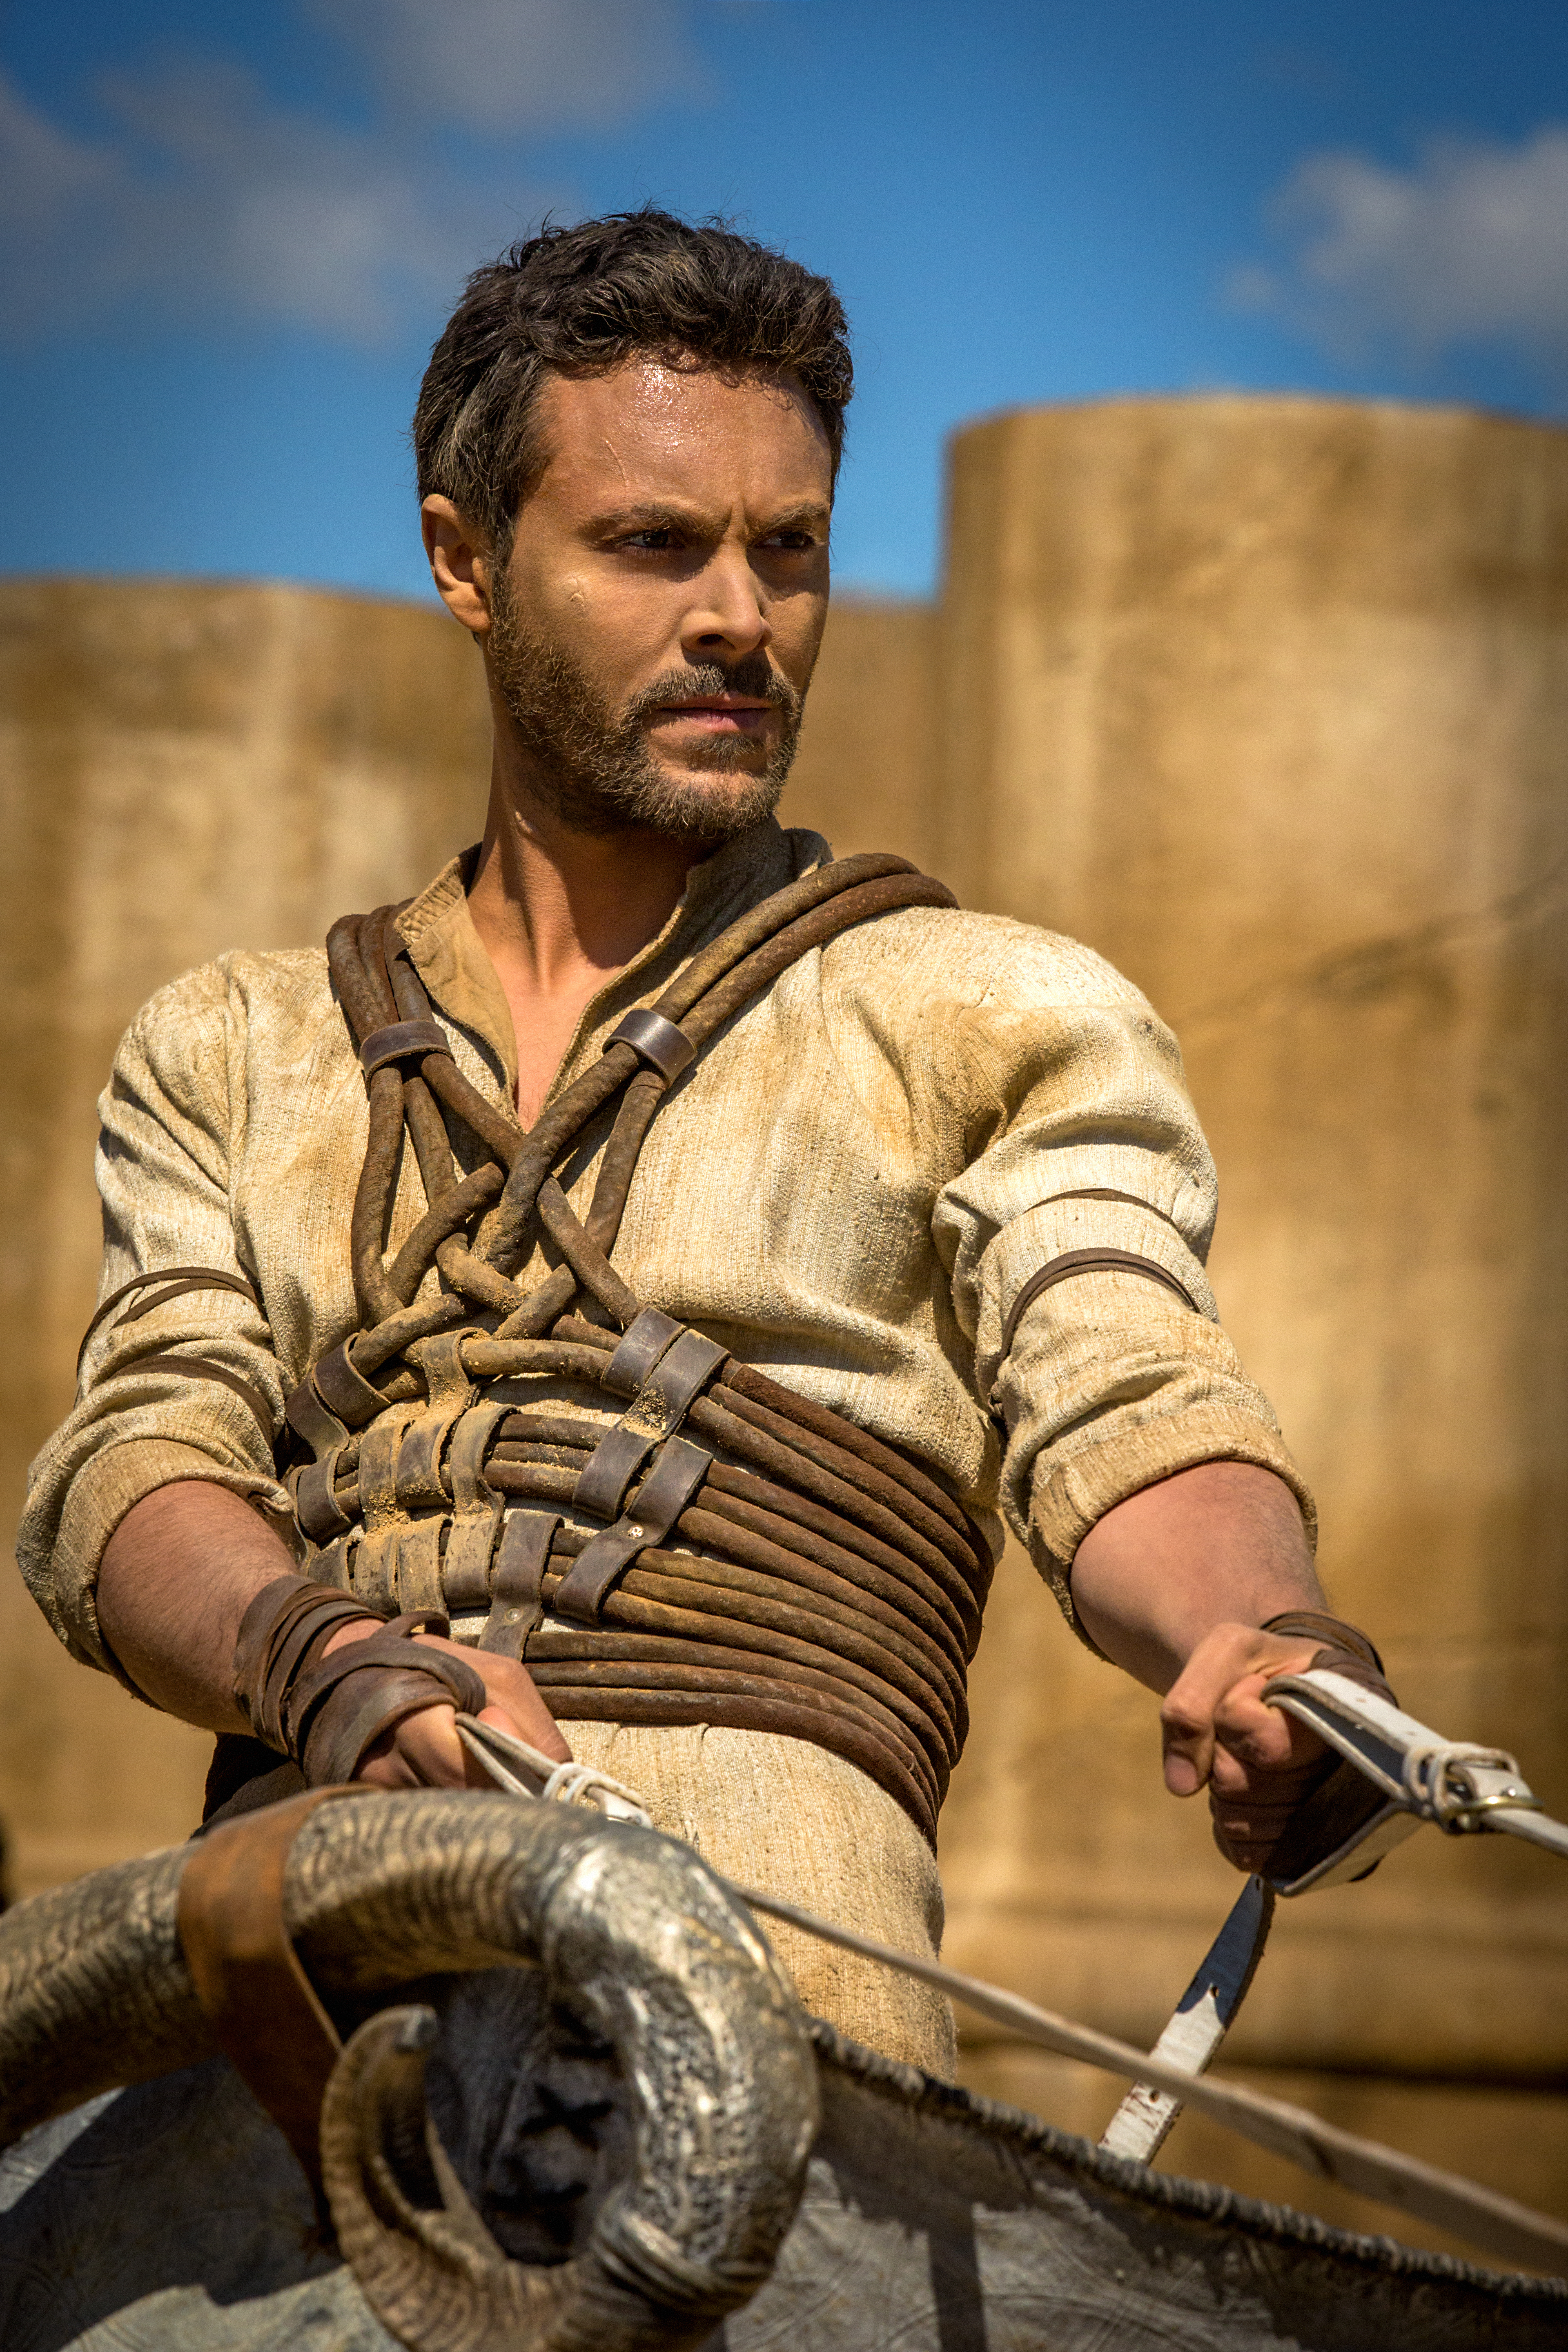 Studio Asked Him to Direct the New BEN-HUR Film and He Said 'No Way' Unless  He Could Change The Story in This Way